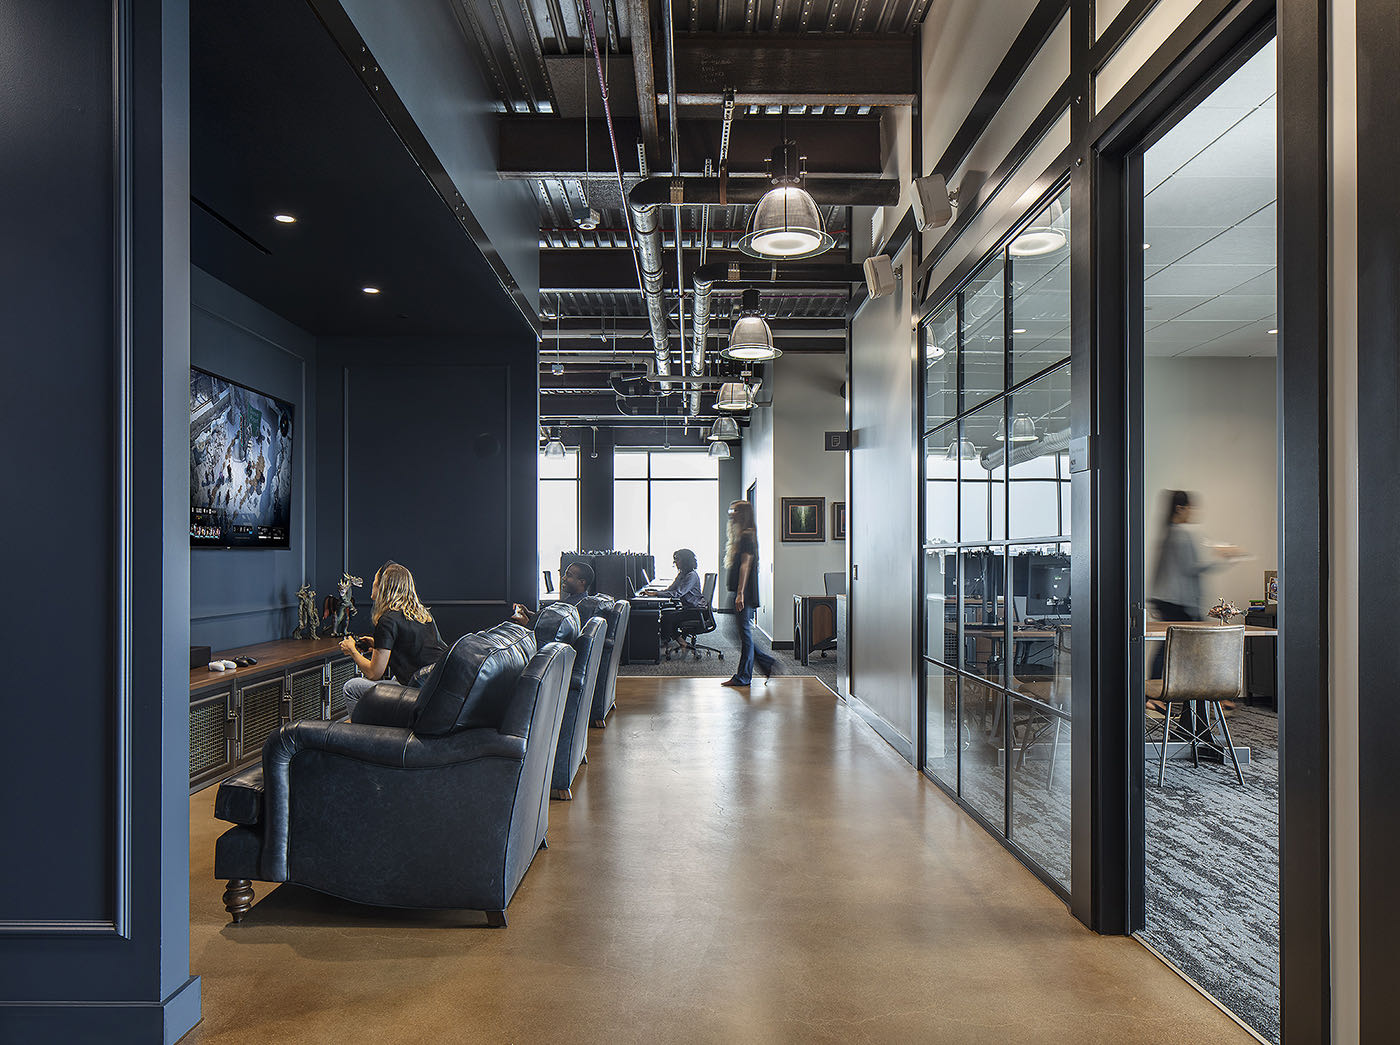 videogaming-company-office-8